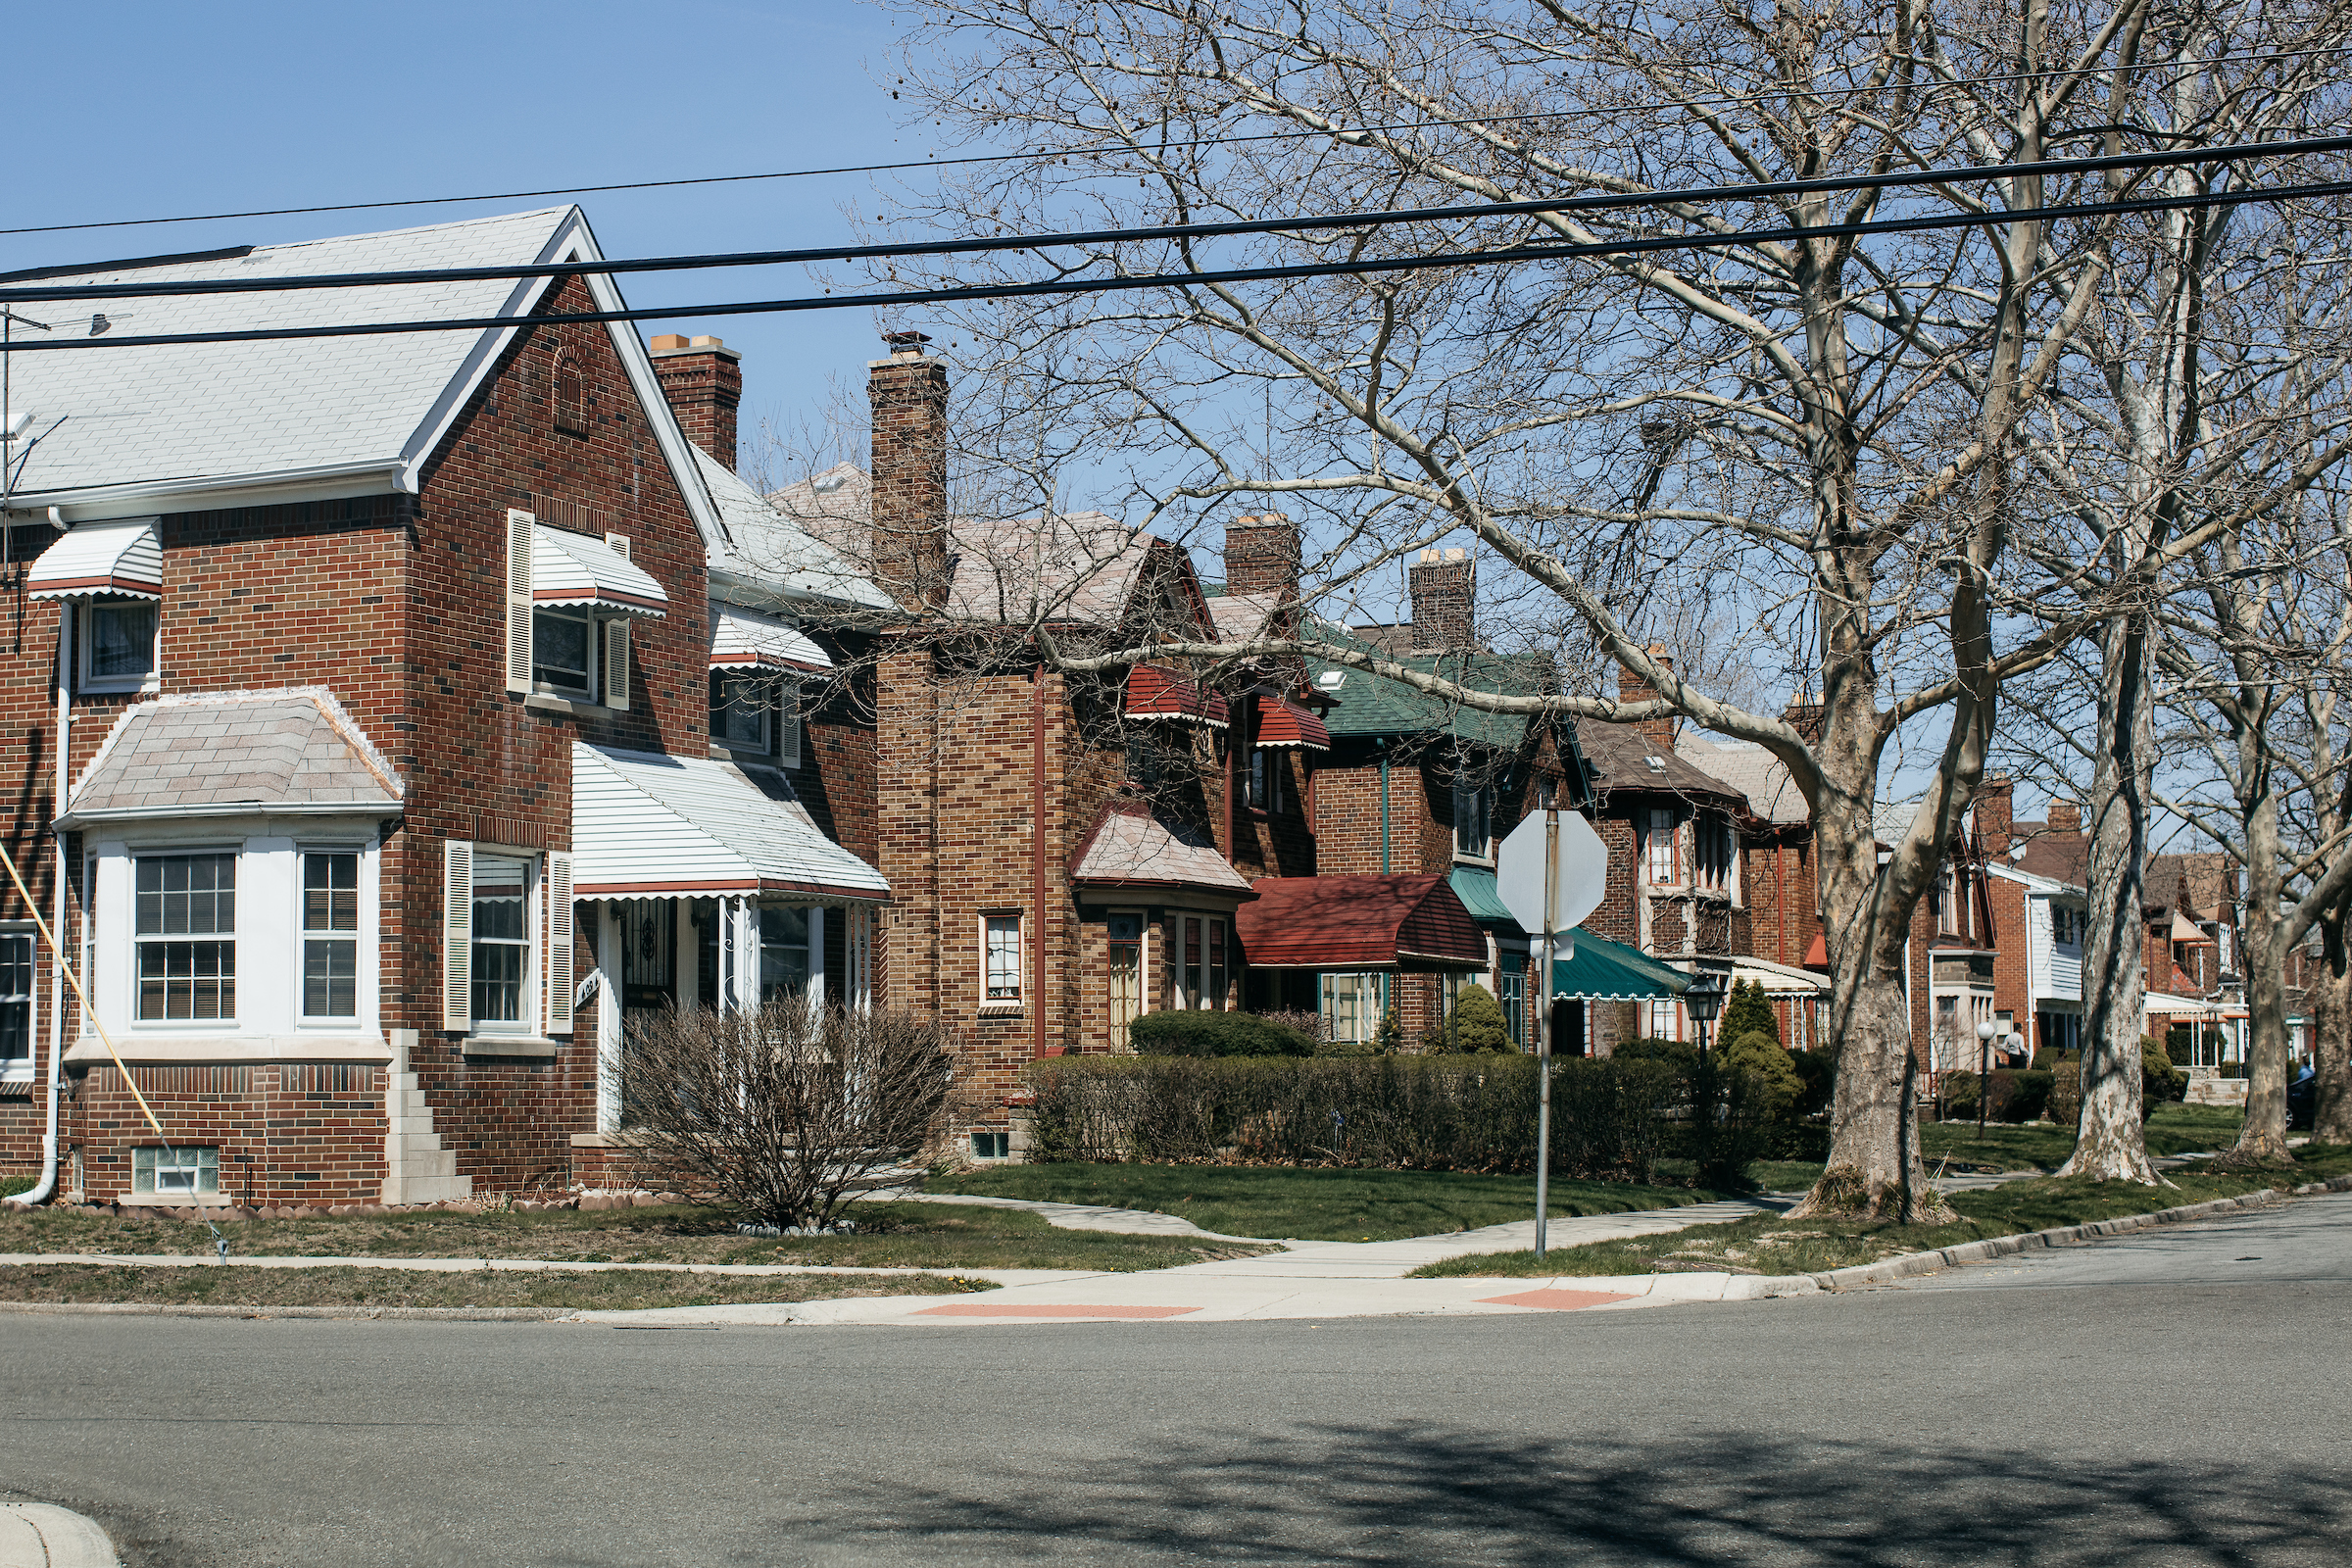 A street lined with two-story brick homes. Many of the windows have awnings over them.